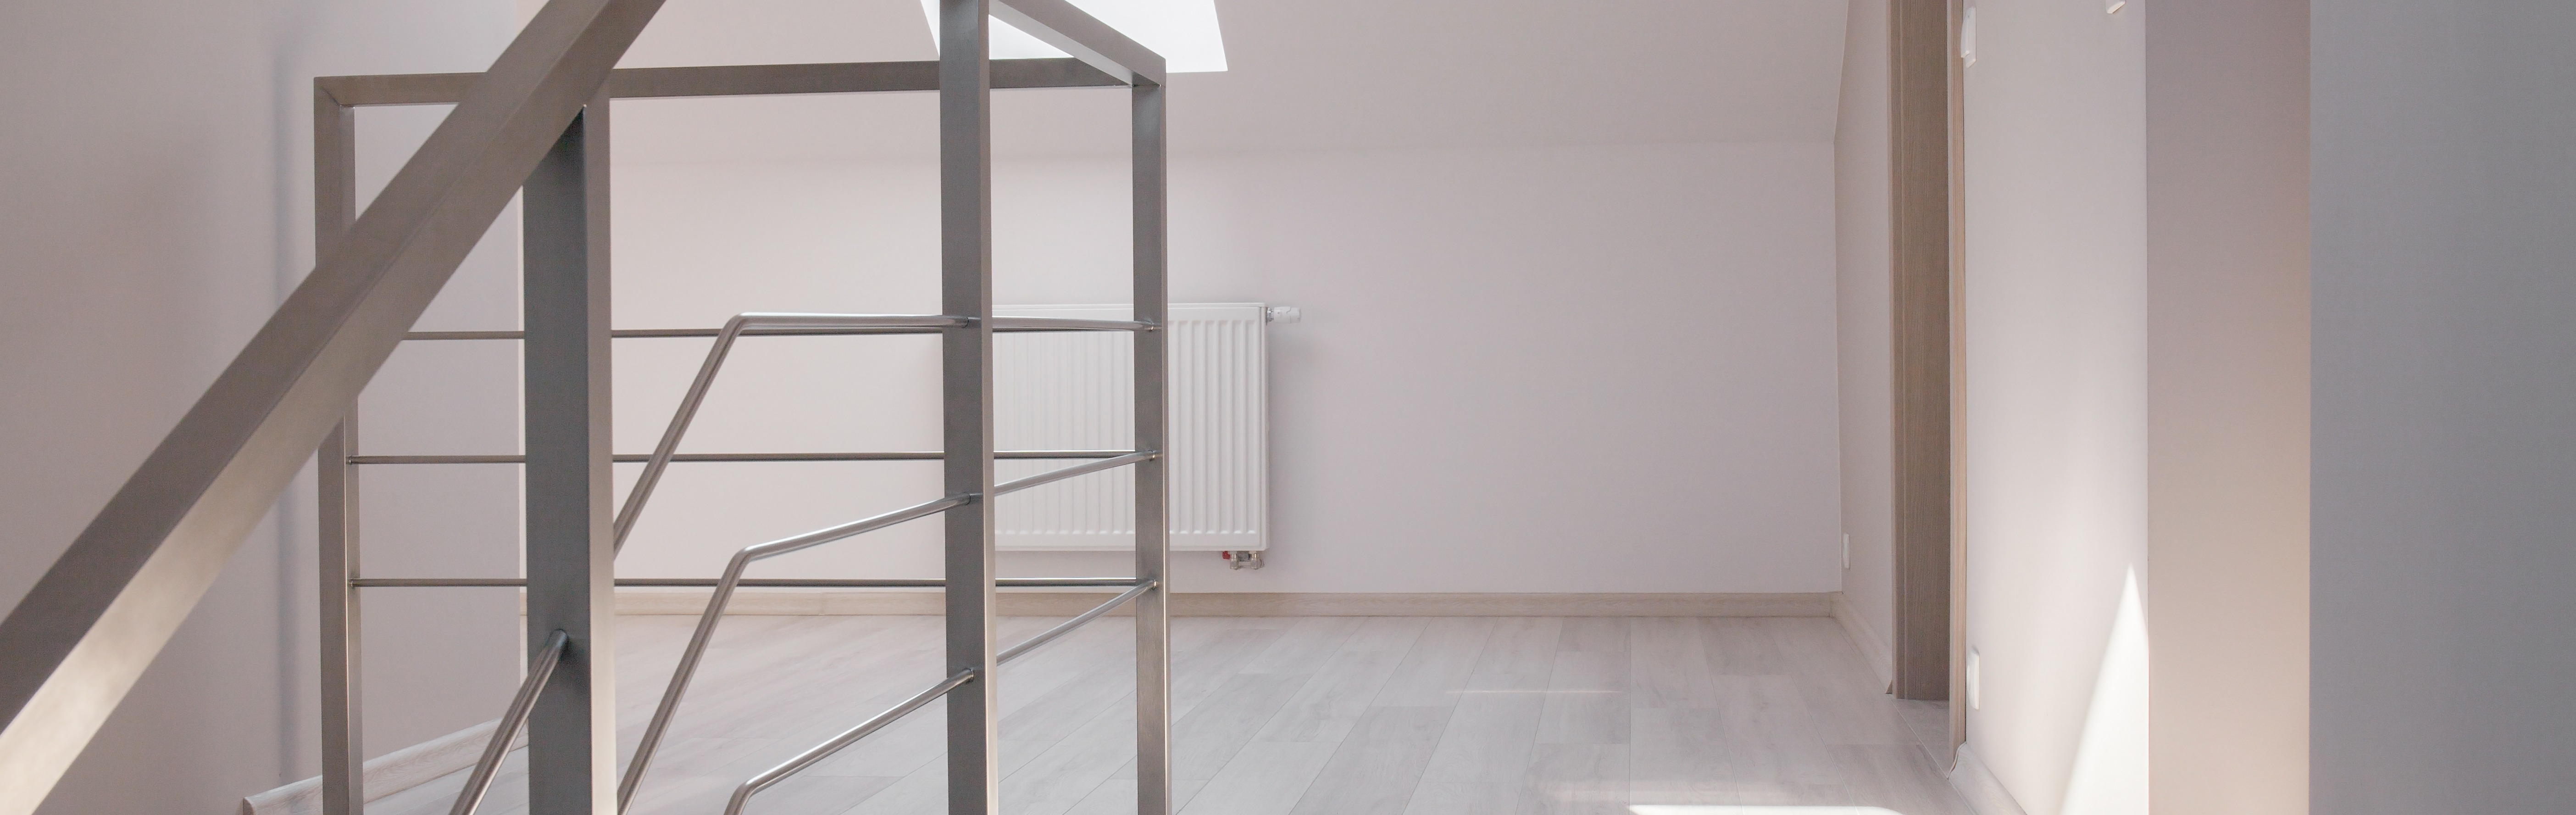 Second floor view in modern commodious house